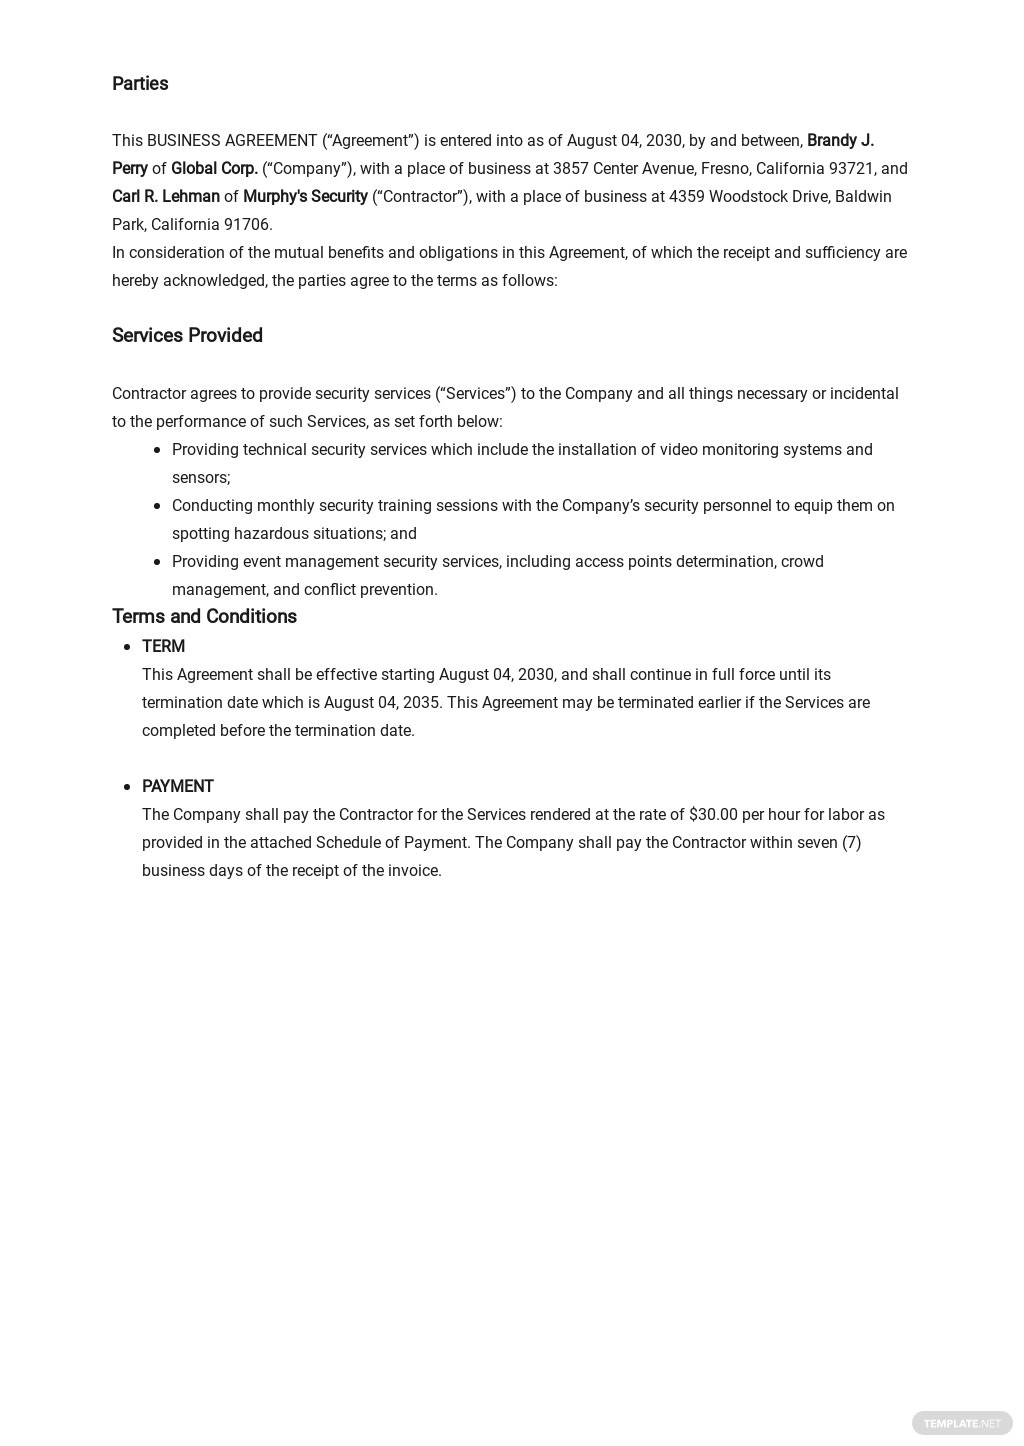 Business Agreement between Two Parties Template 1.jpe